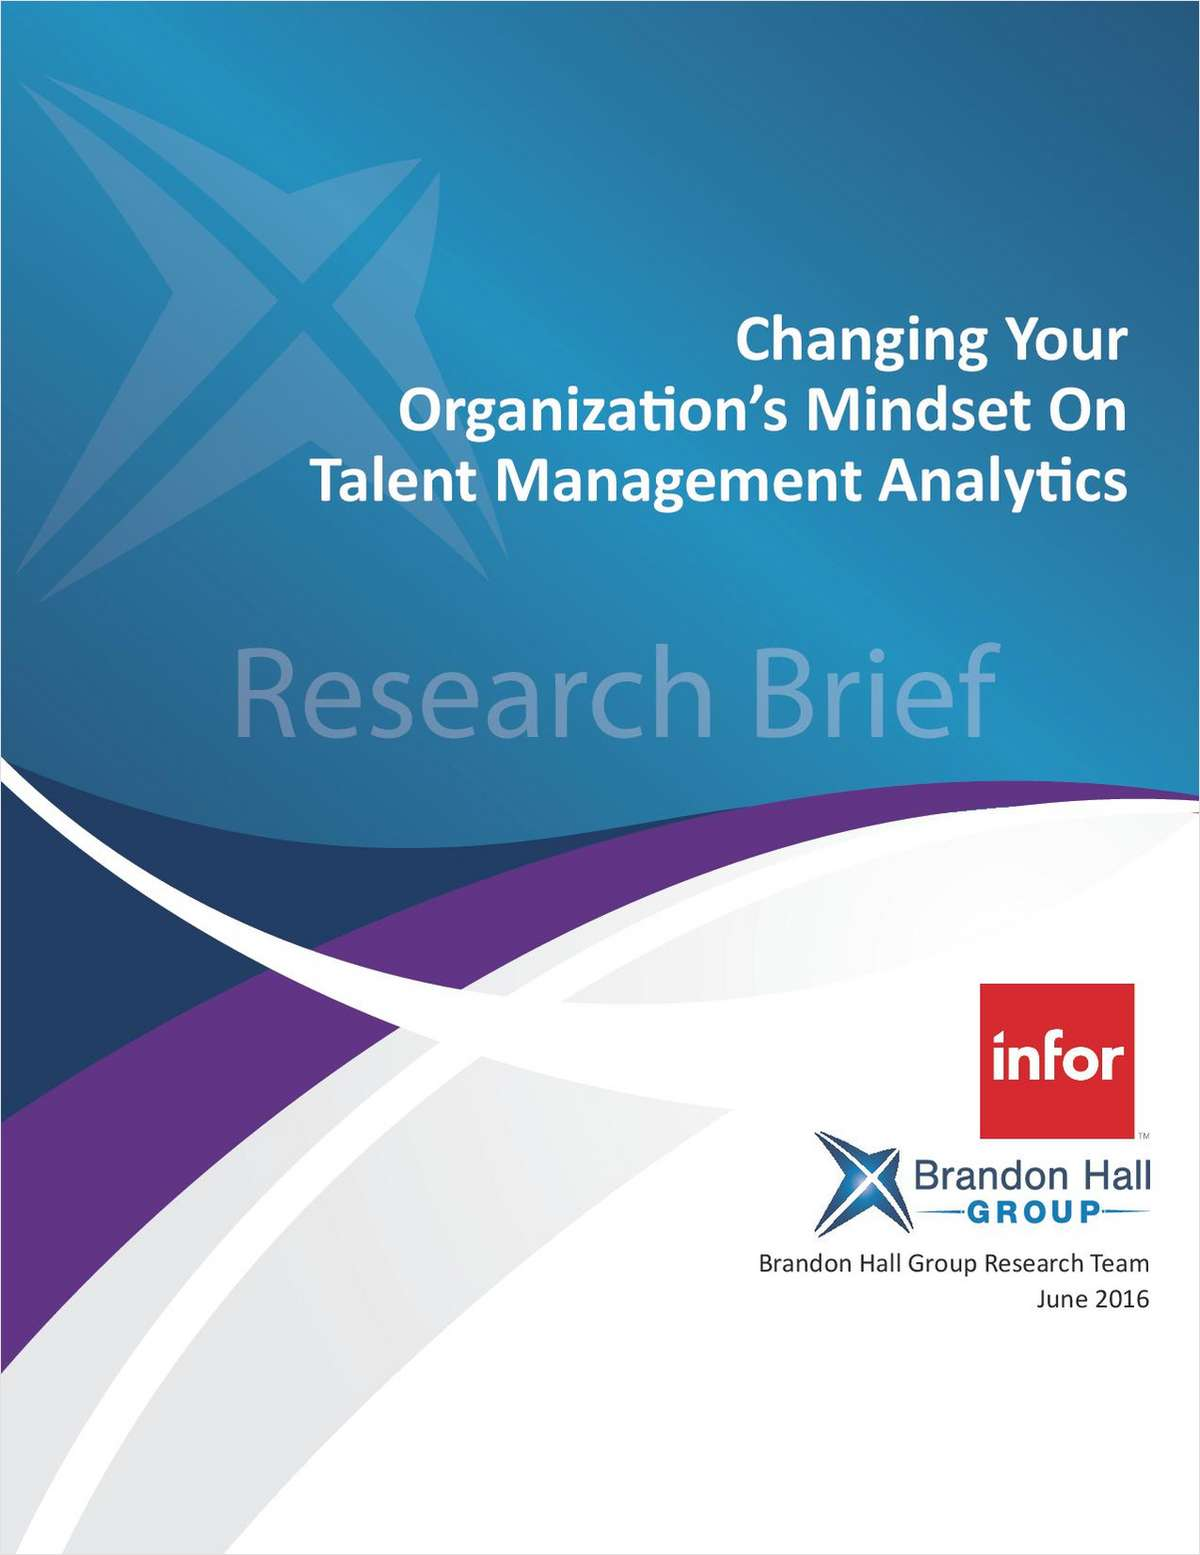 Changing Your Organization's Mindset on Talent Management Analytics